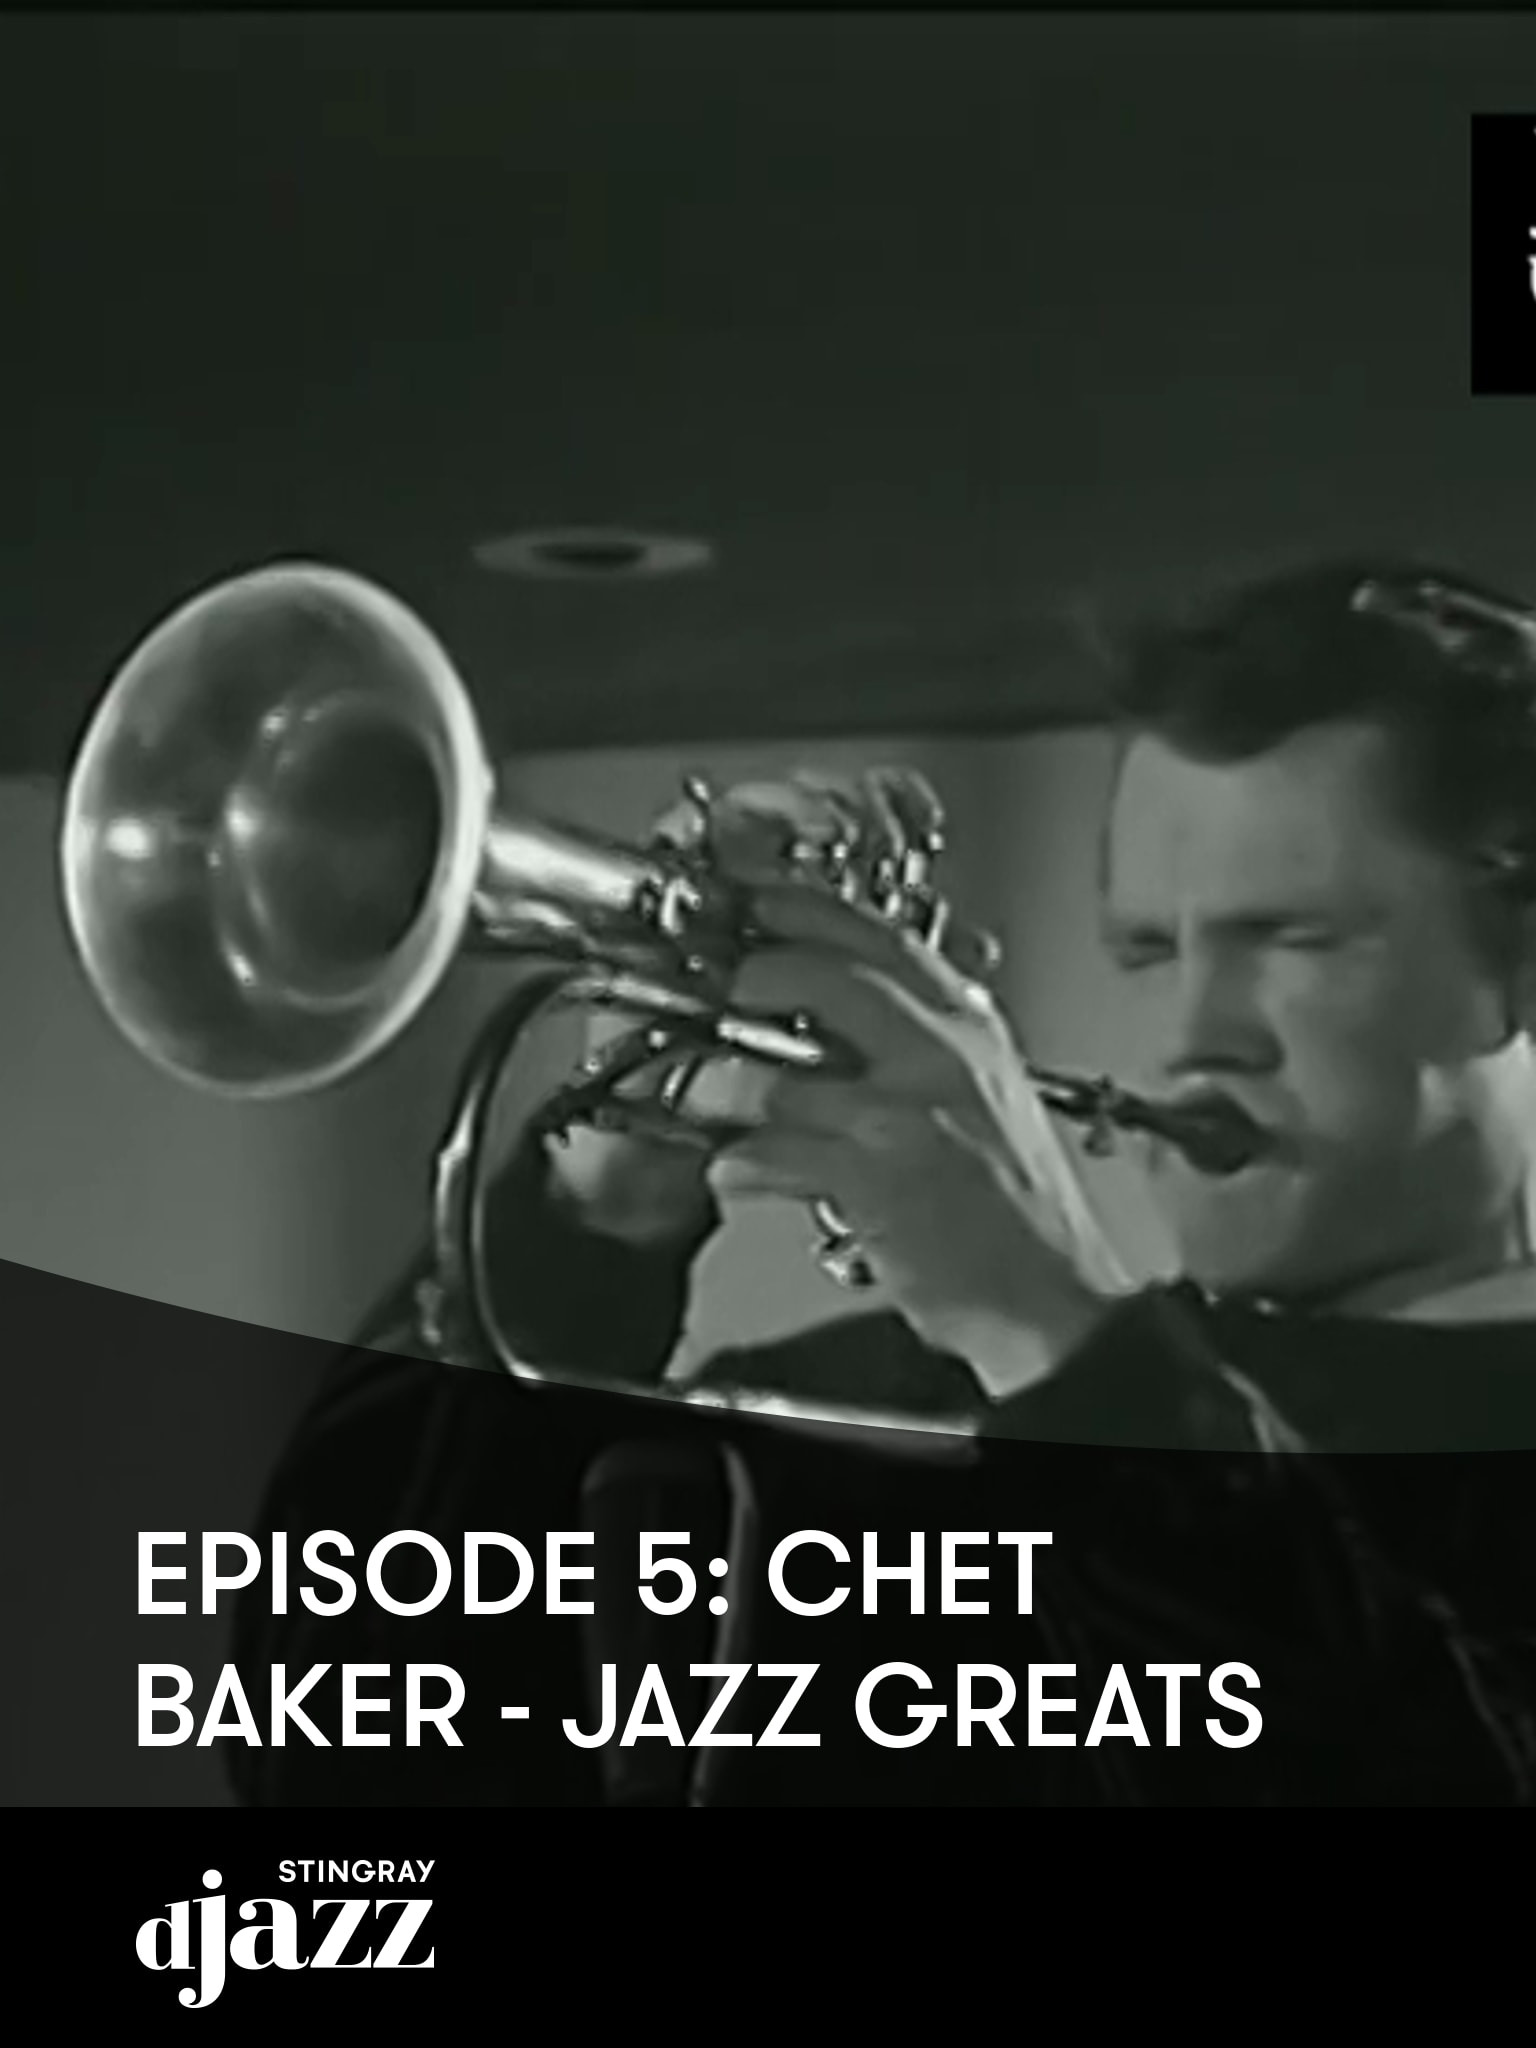 Episode 5: Chet Baker - Jazz Greats